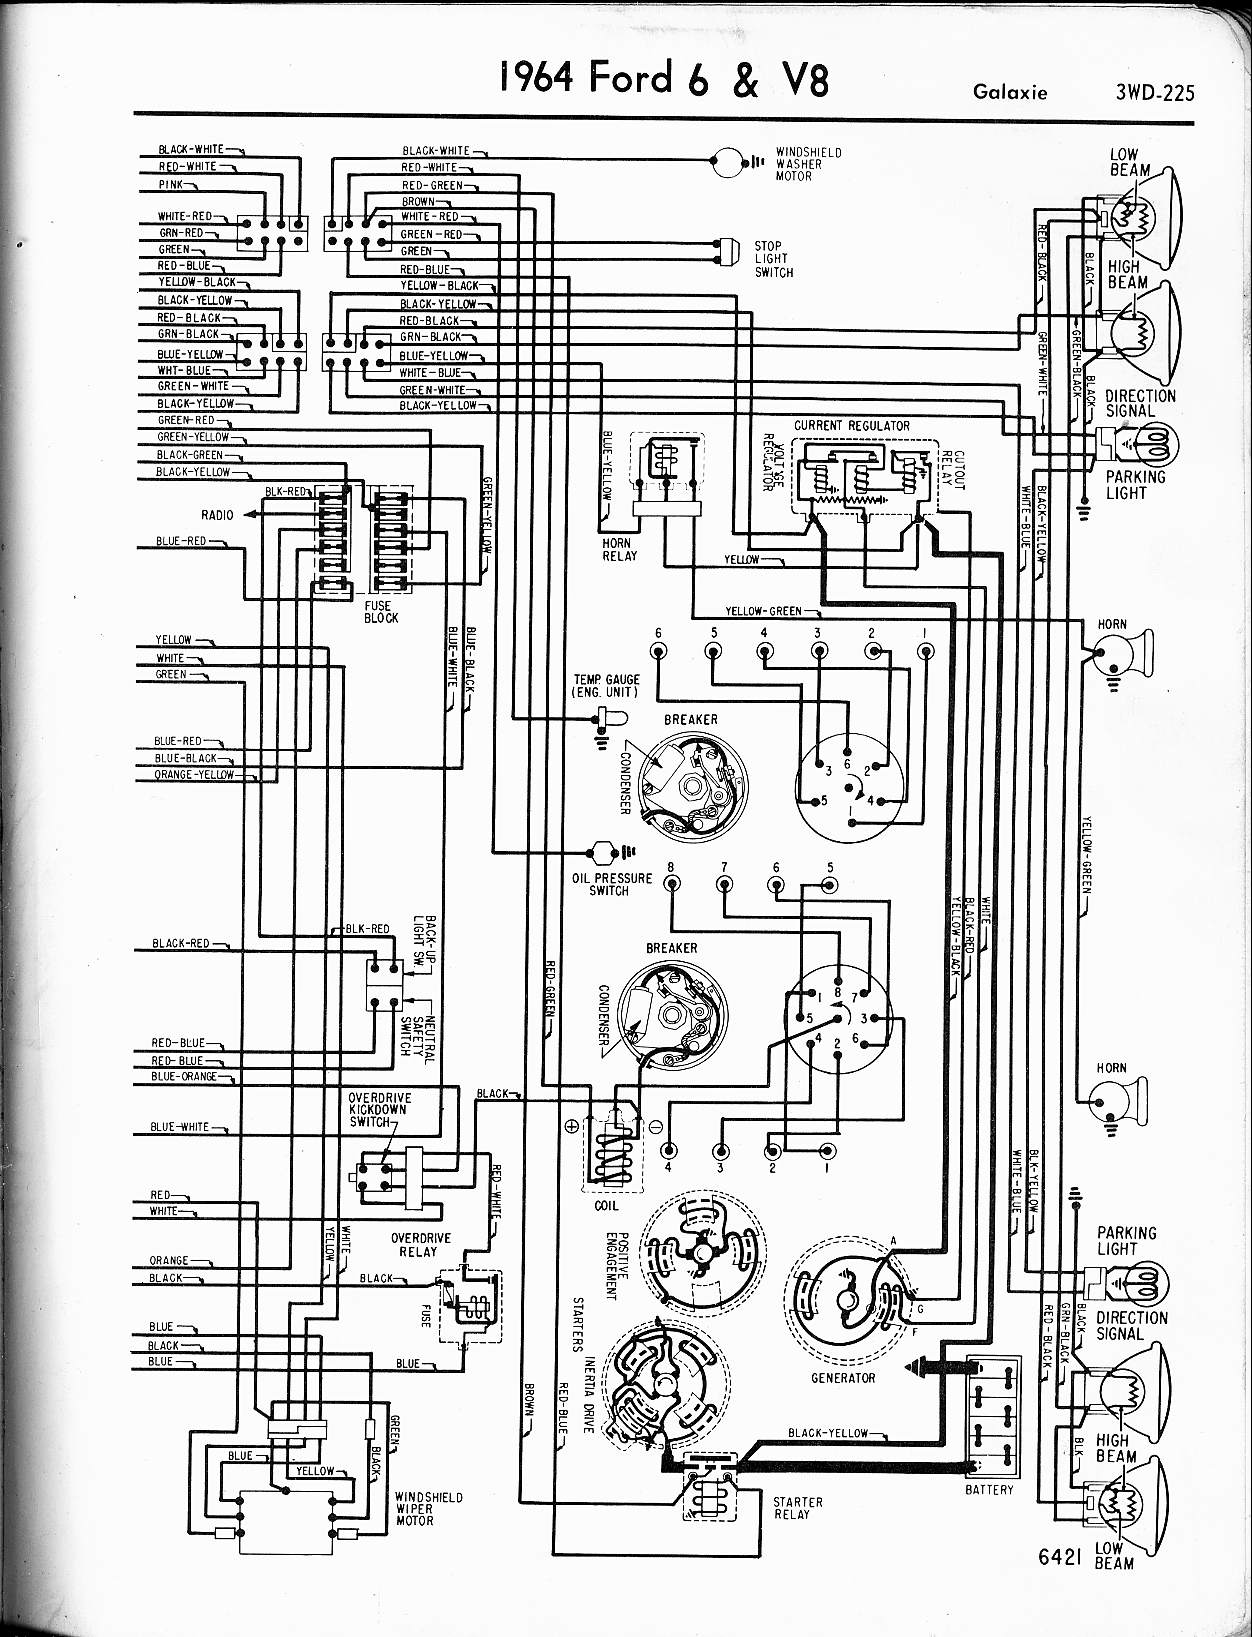 MWire5765 225 1964 f100 wiring diagram 1965 f100 wiring diagram \u2022 free wiring  at reclaimingppi.co